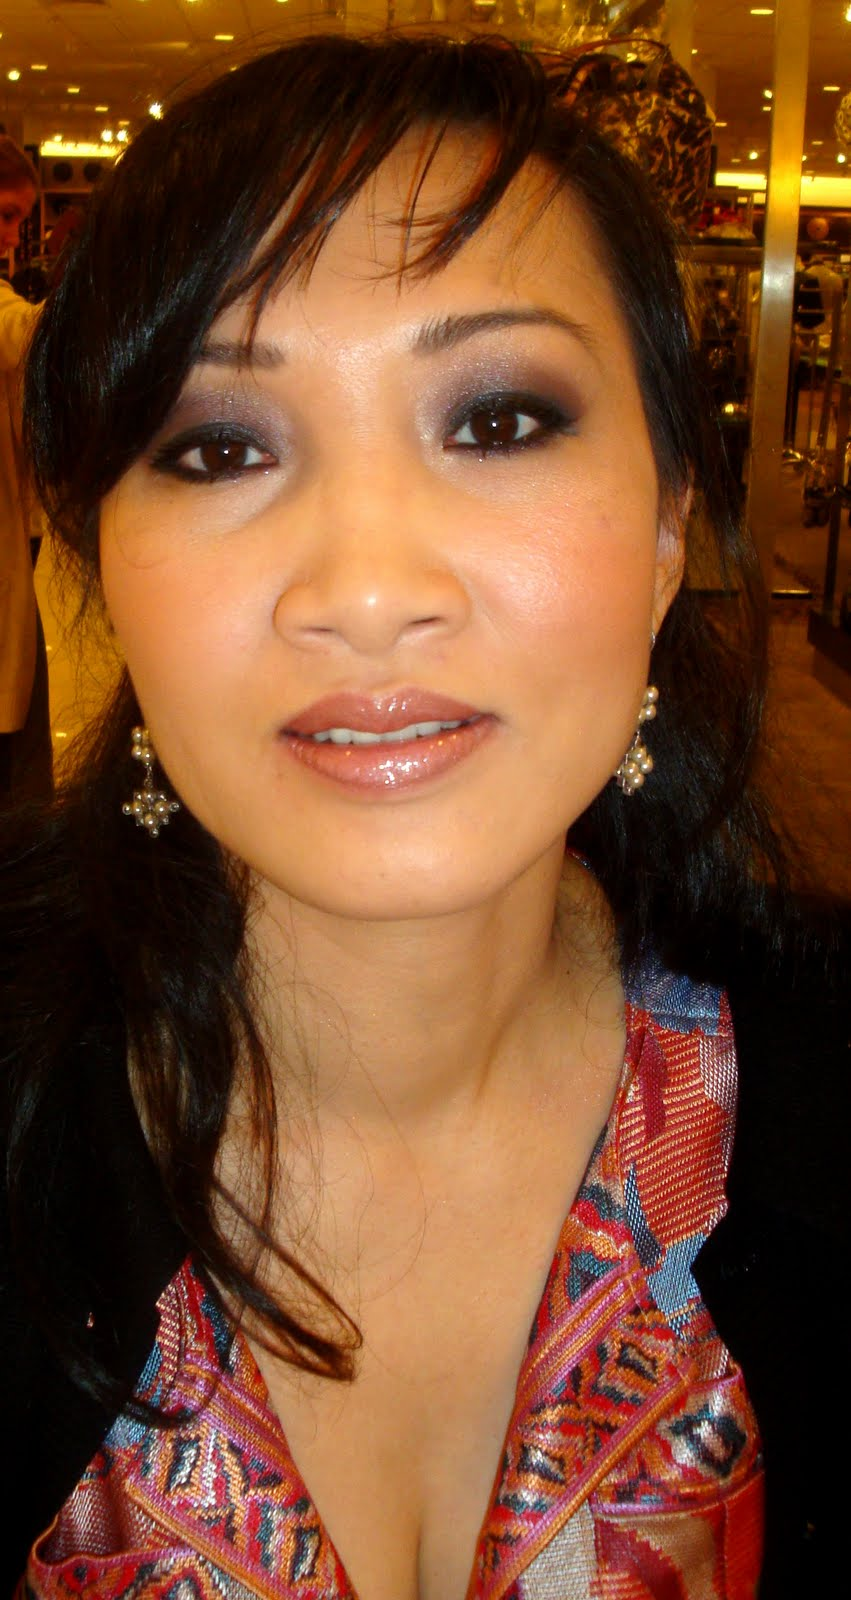 morning makeup call: transmokey asian eye makeup by: darais and maria